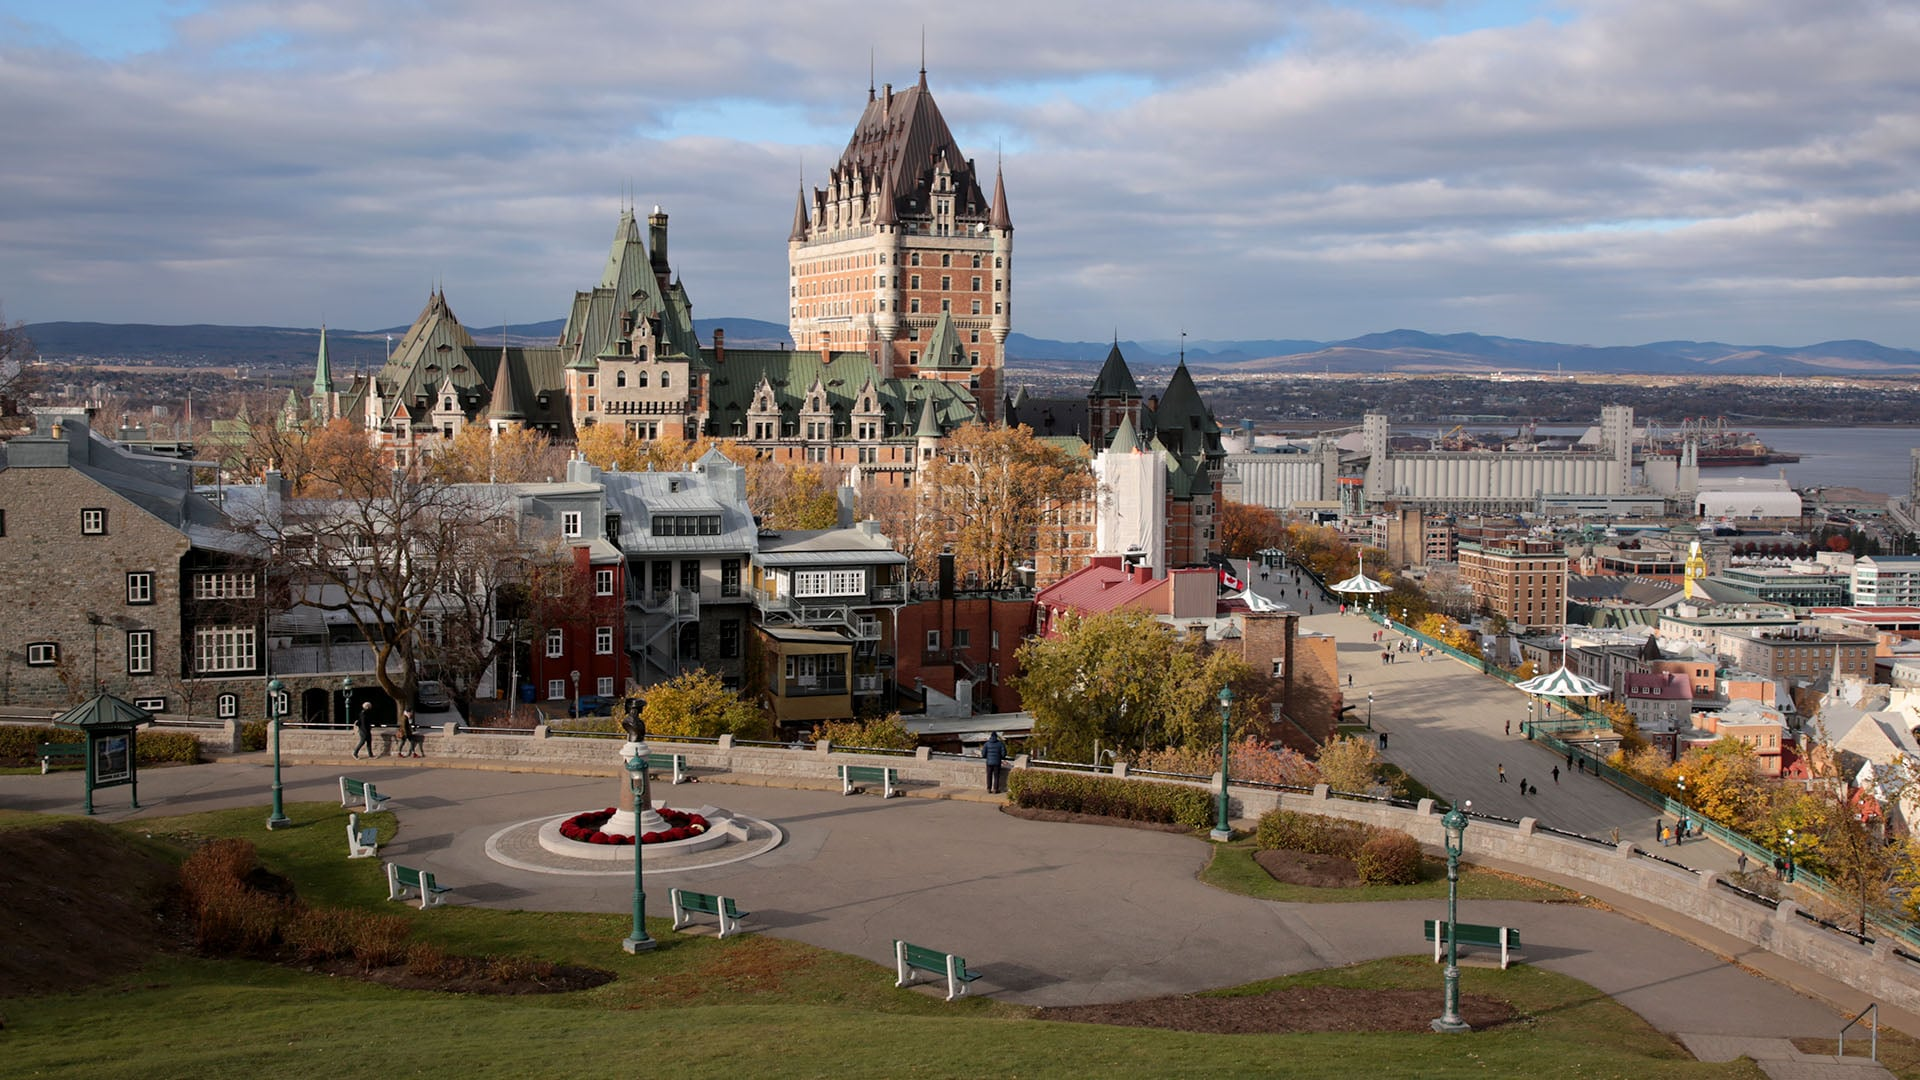 Above photo: From Bastion de la Reine Park, the Fairmont Le Chateau Frontenac dominates the skyline. The Terrasse Dufferin walkway is seen on the lower right.